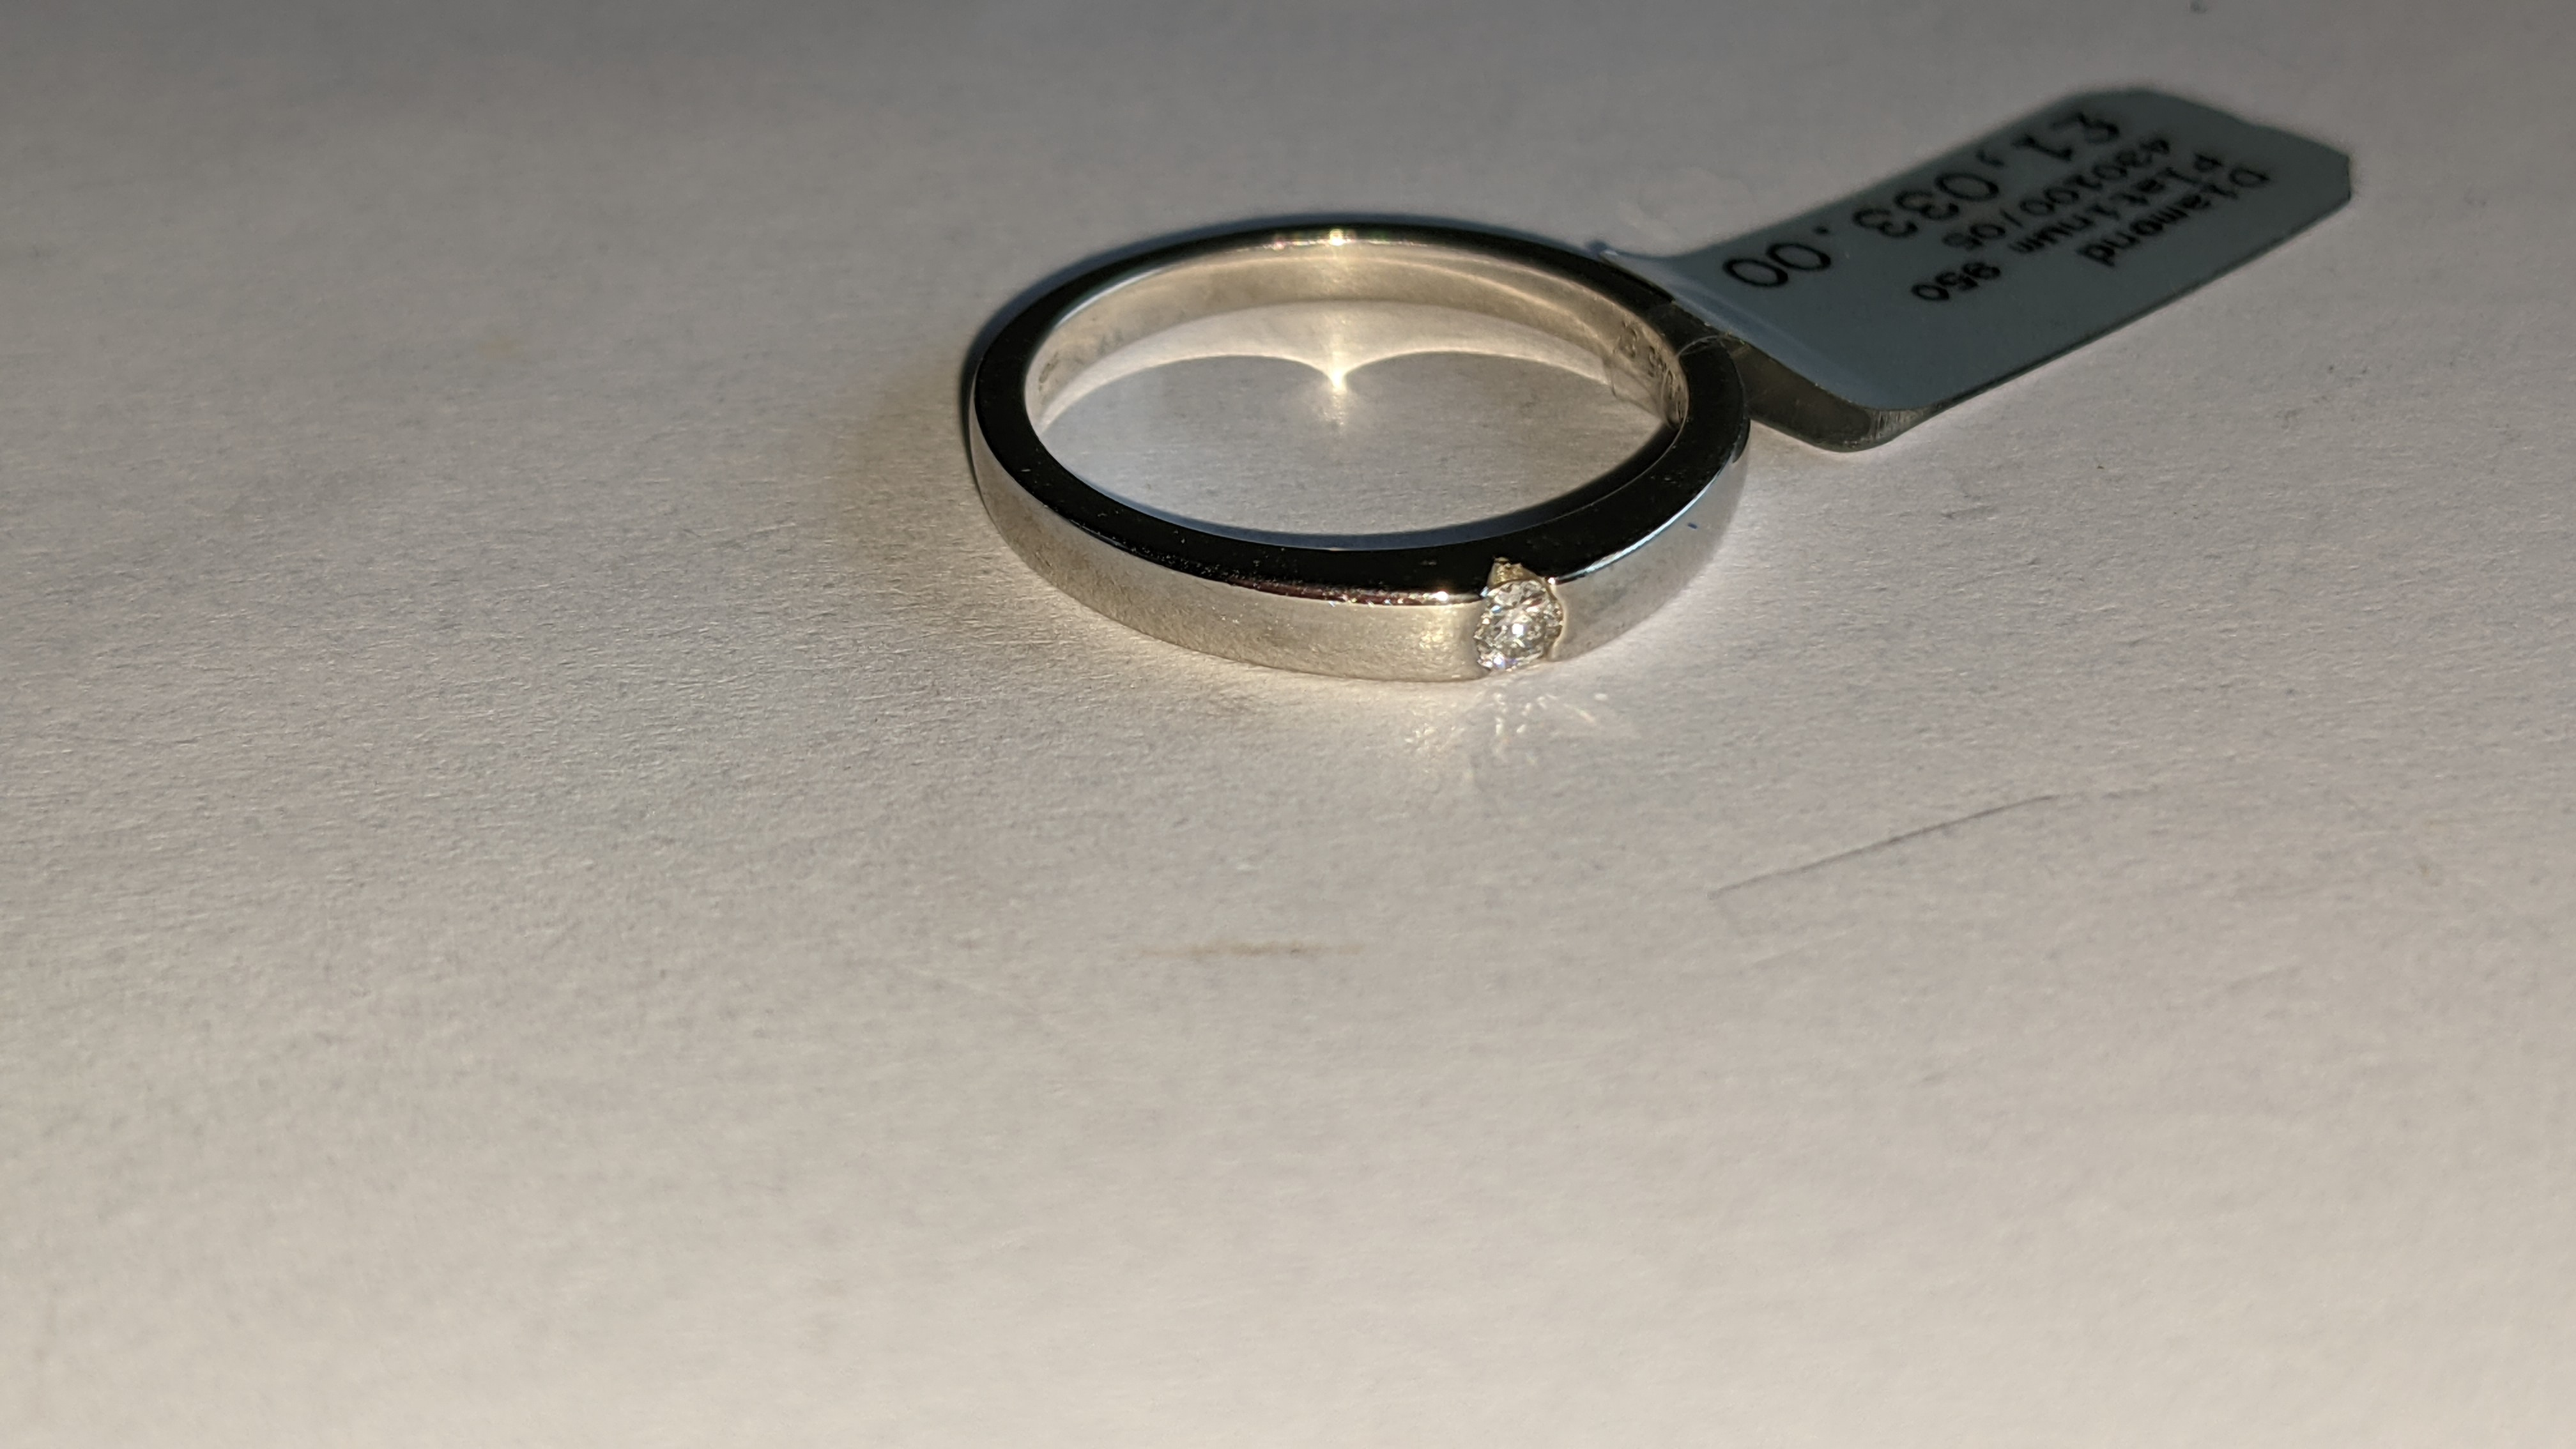 Platinum 950 ring with 0.05ct H/Si diamond. RRP £1,033 - Image 6 of 13